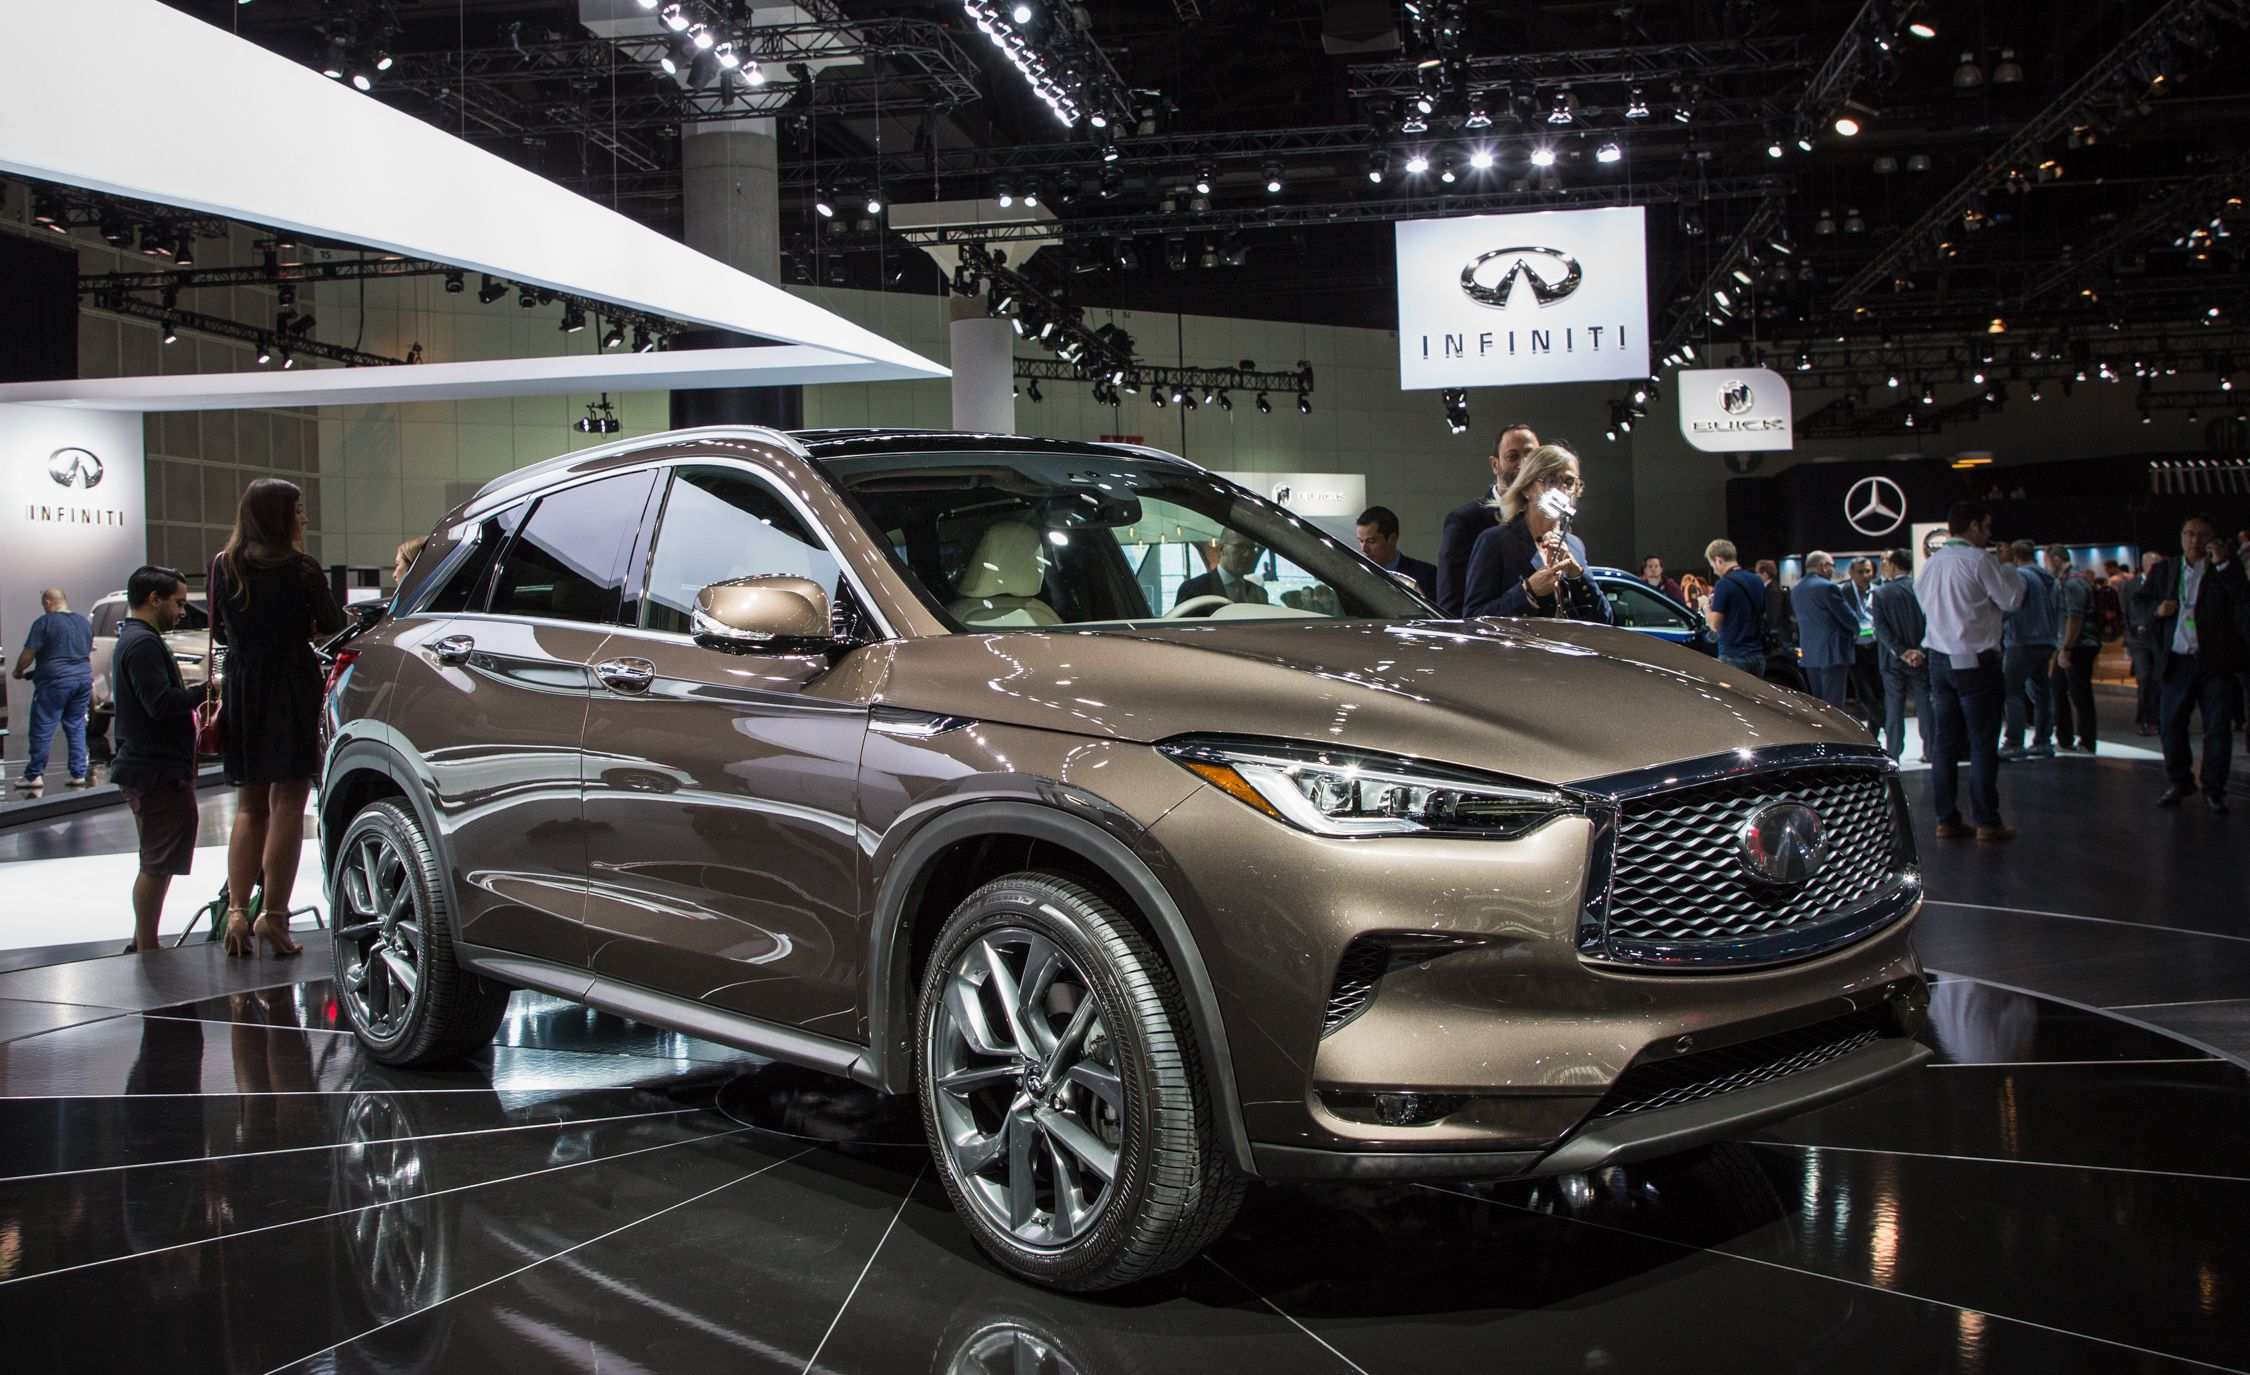 59 All New The Infiniti Qx50 2019 Black First Drive Review with The Infiniti Qx50 2019 Black First Drive